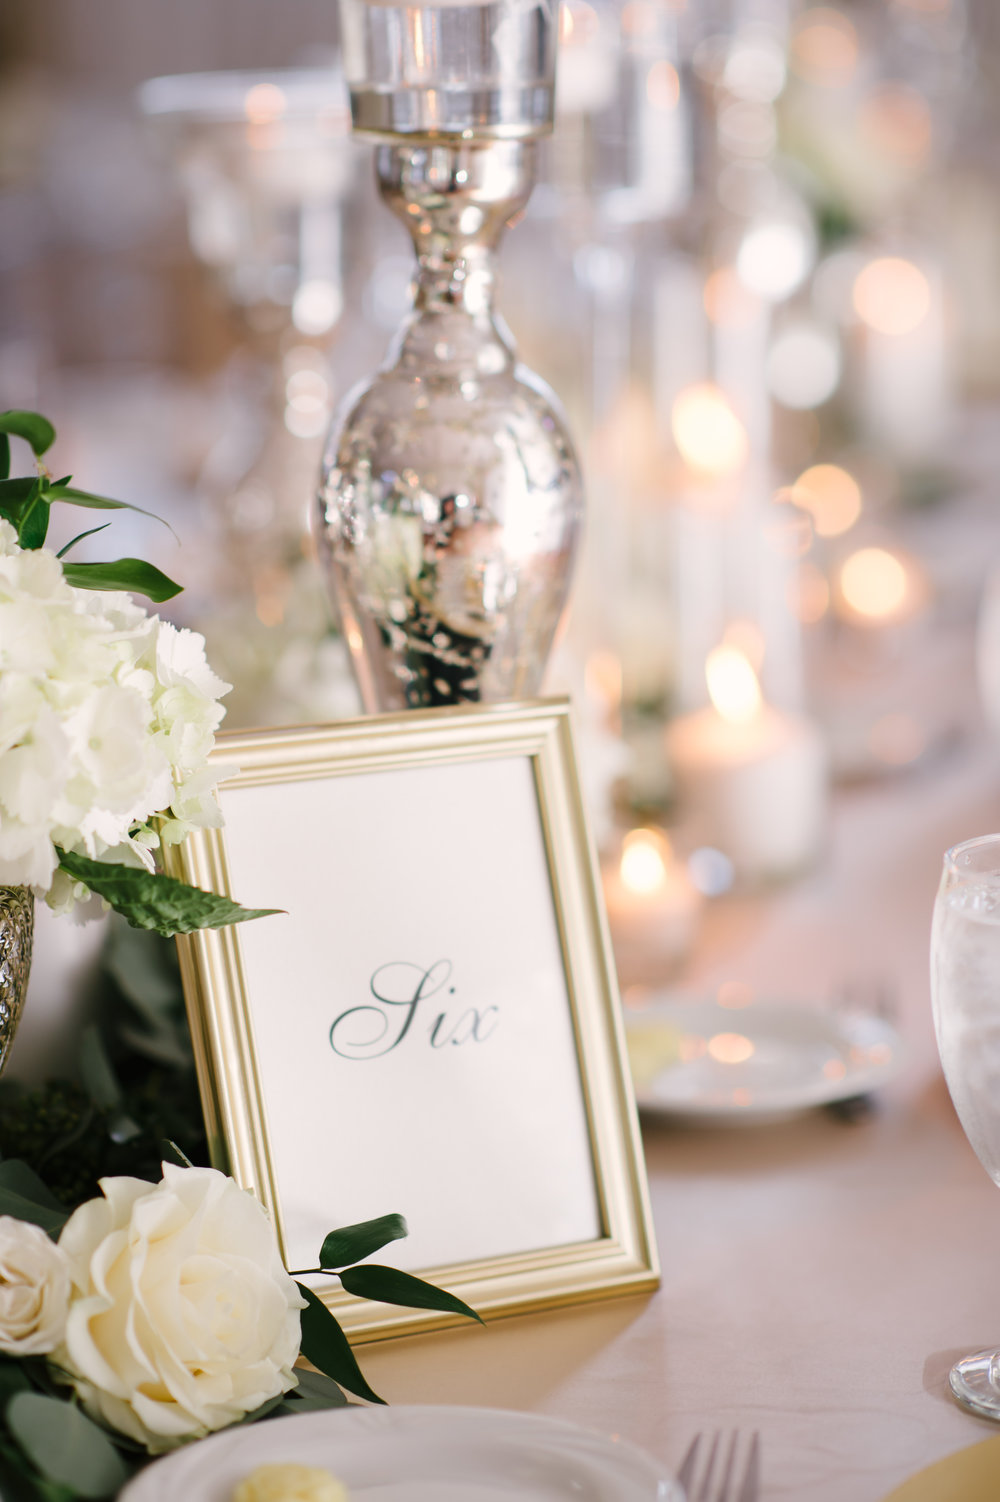 The table numbers, set in an elegant black script within gold frames, sat amongst candlelight reflected off of silver mercury glass accents along the tables.